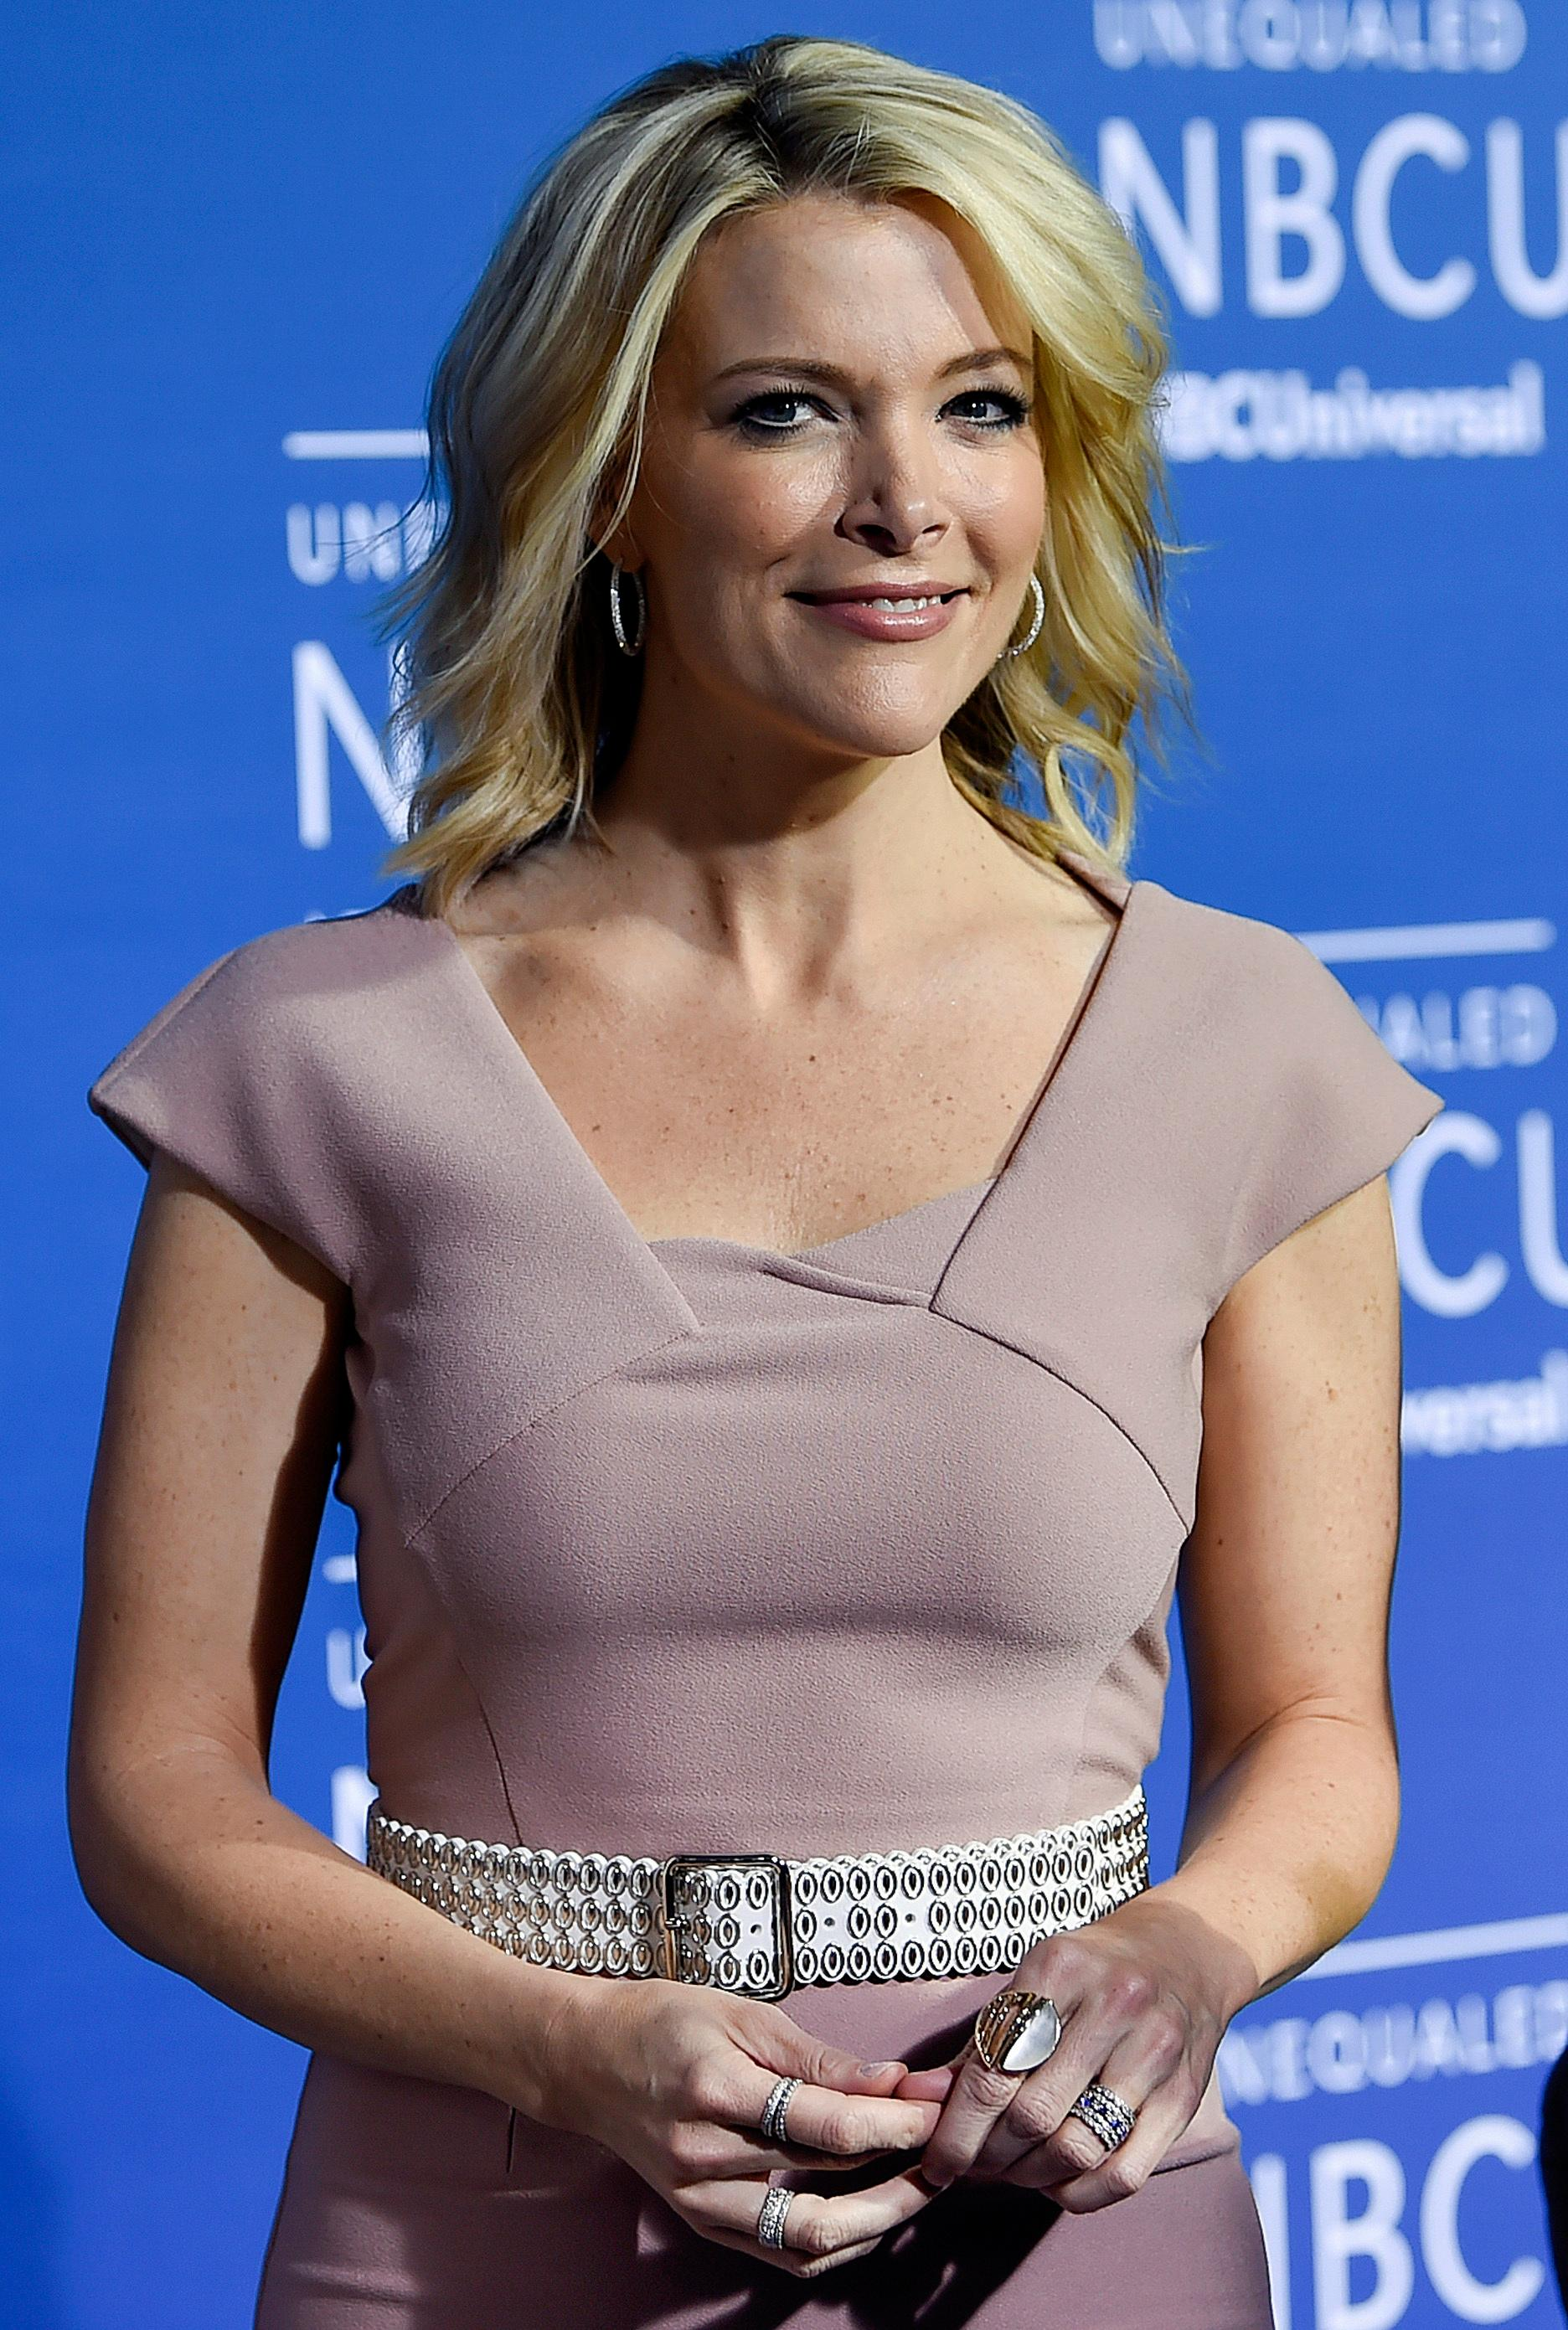 FILE - In this May 15, 2017, file photo, television journalist Megyn Kelly attends the NBCUniversal Network 2017 Upfront at Radio City Music Hall in New York. The families of some Sandy Hook shooting victims are angered by a planned NBC television interview by Kelly scheduled to air Sunday, June 18, 2017, with Alex Jones, who has claimed the 2012 massacre in Newtown, Conn., never happened. (Photo by Evan Agostini/Invision/AP, File)